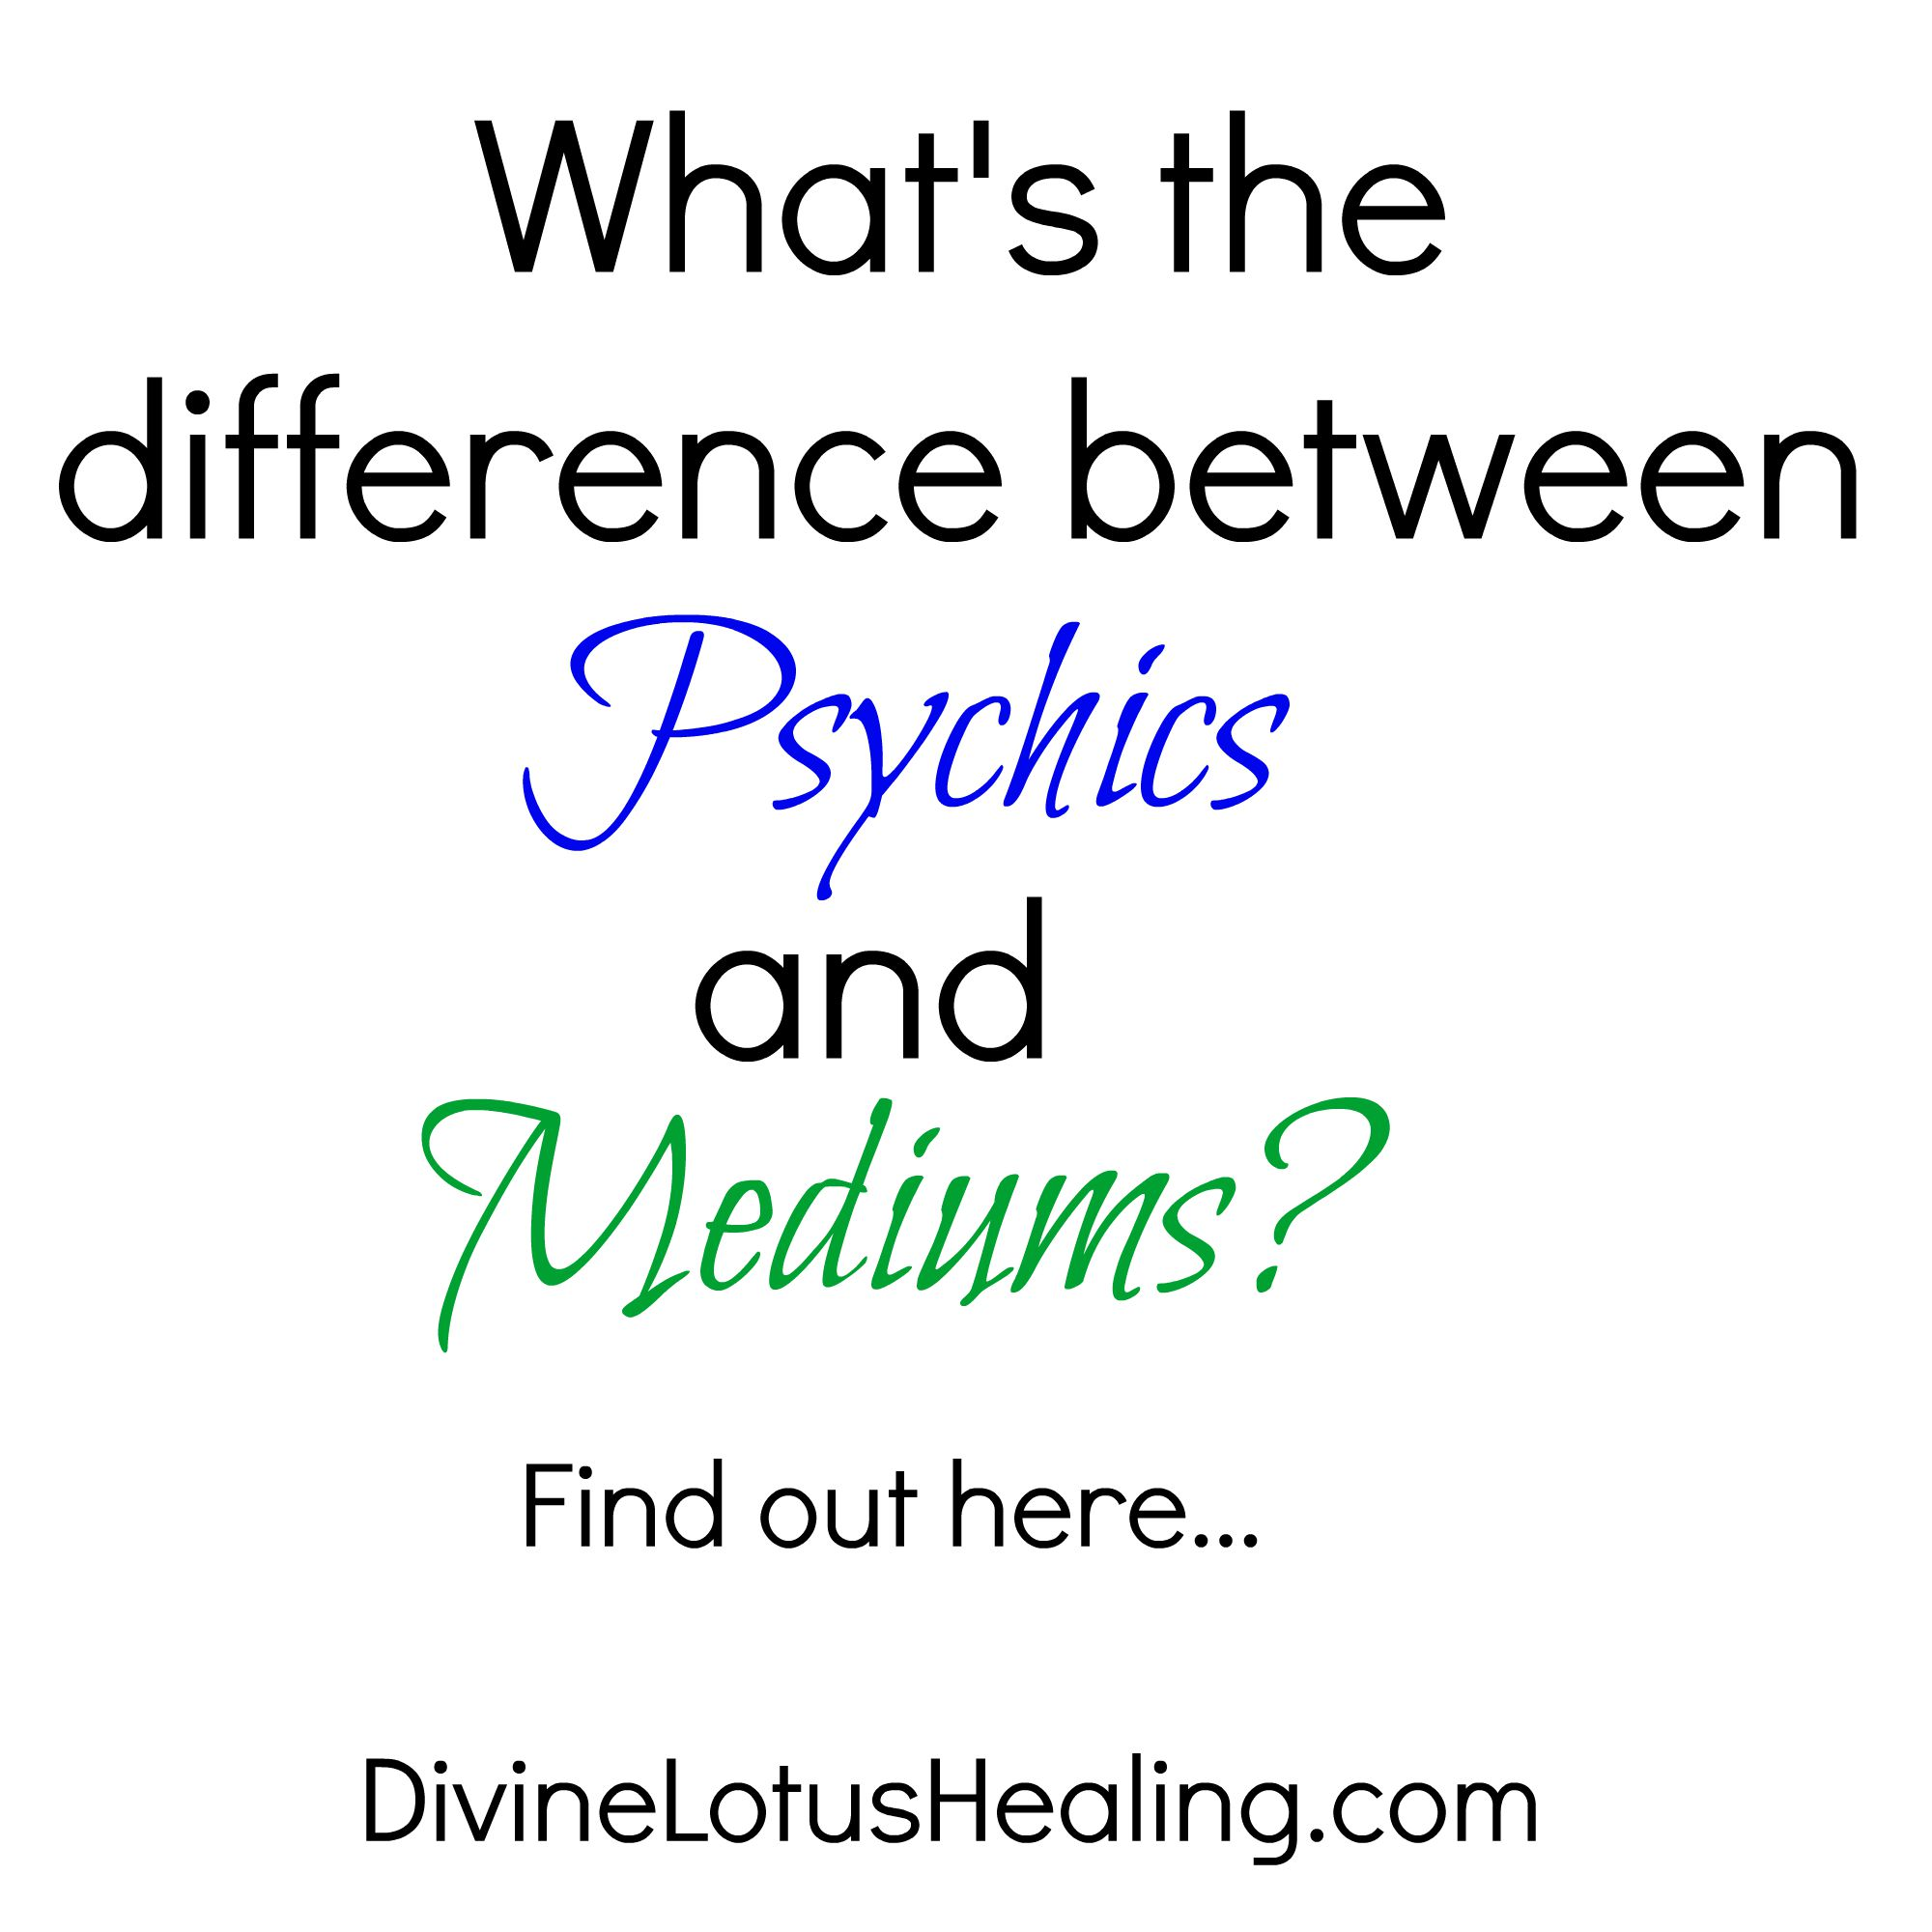 Divine Lotus Healing | What's The Difference Between Psychics and Mediums